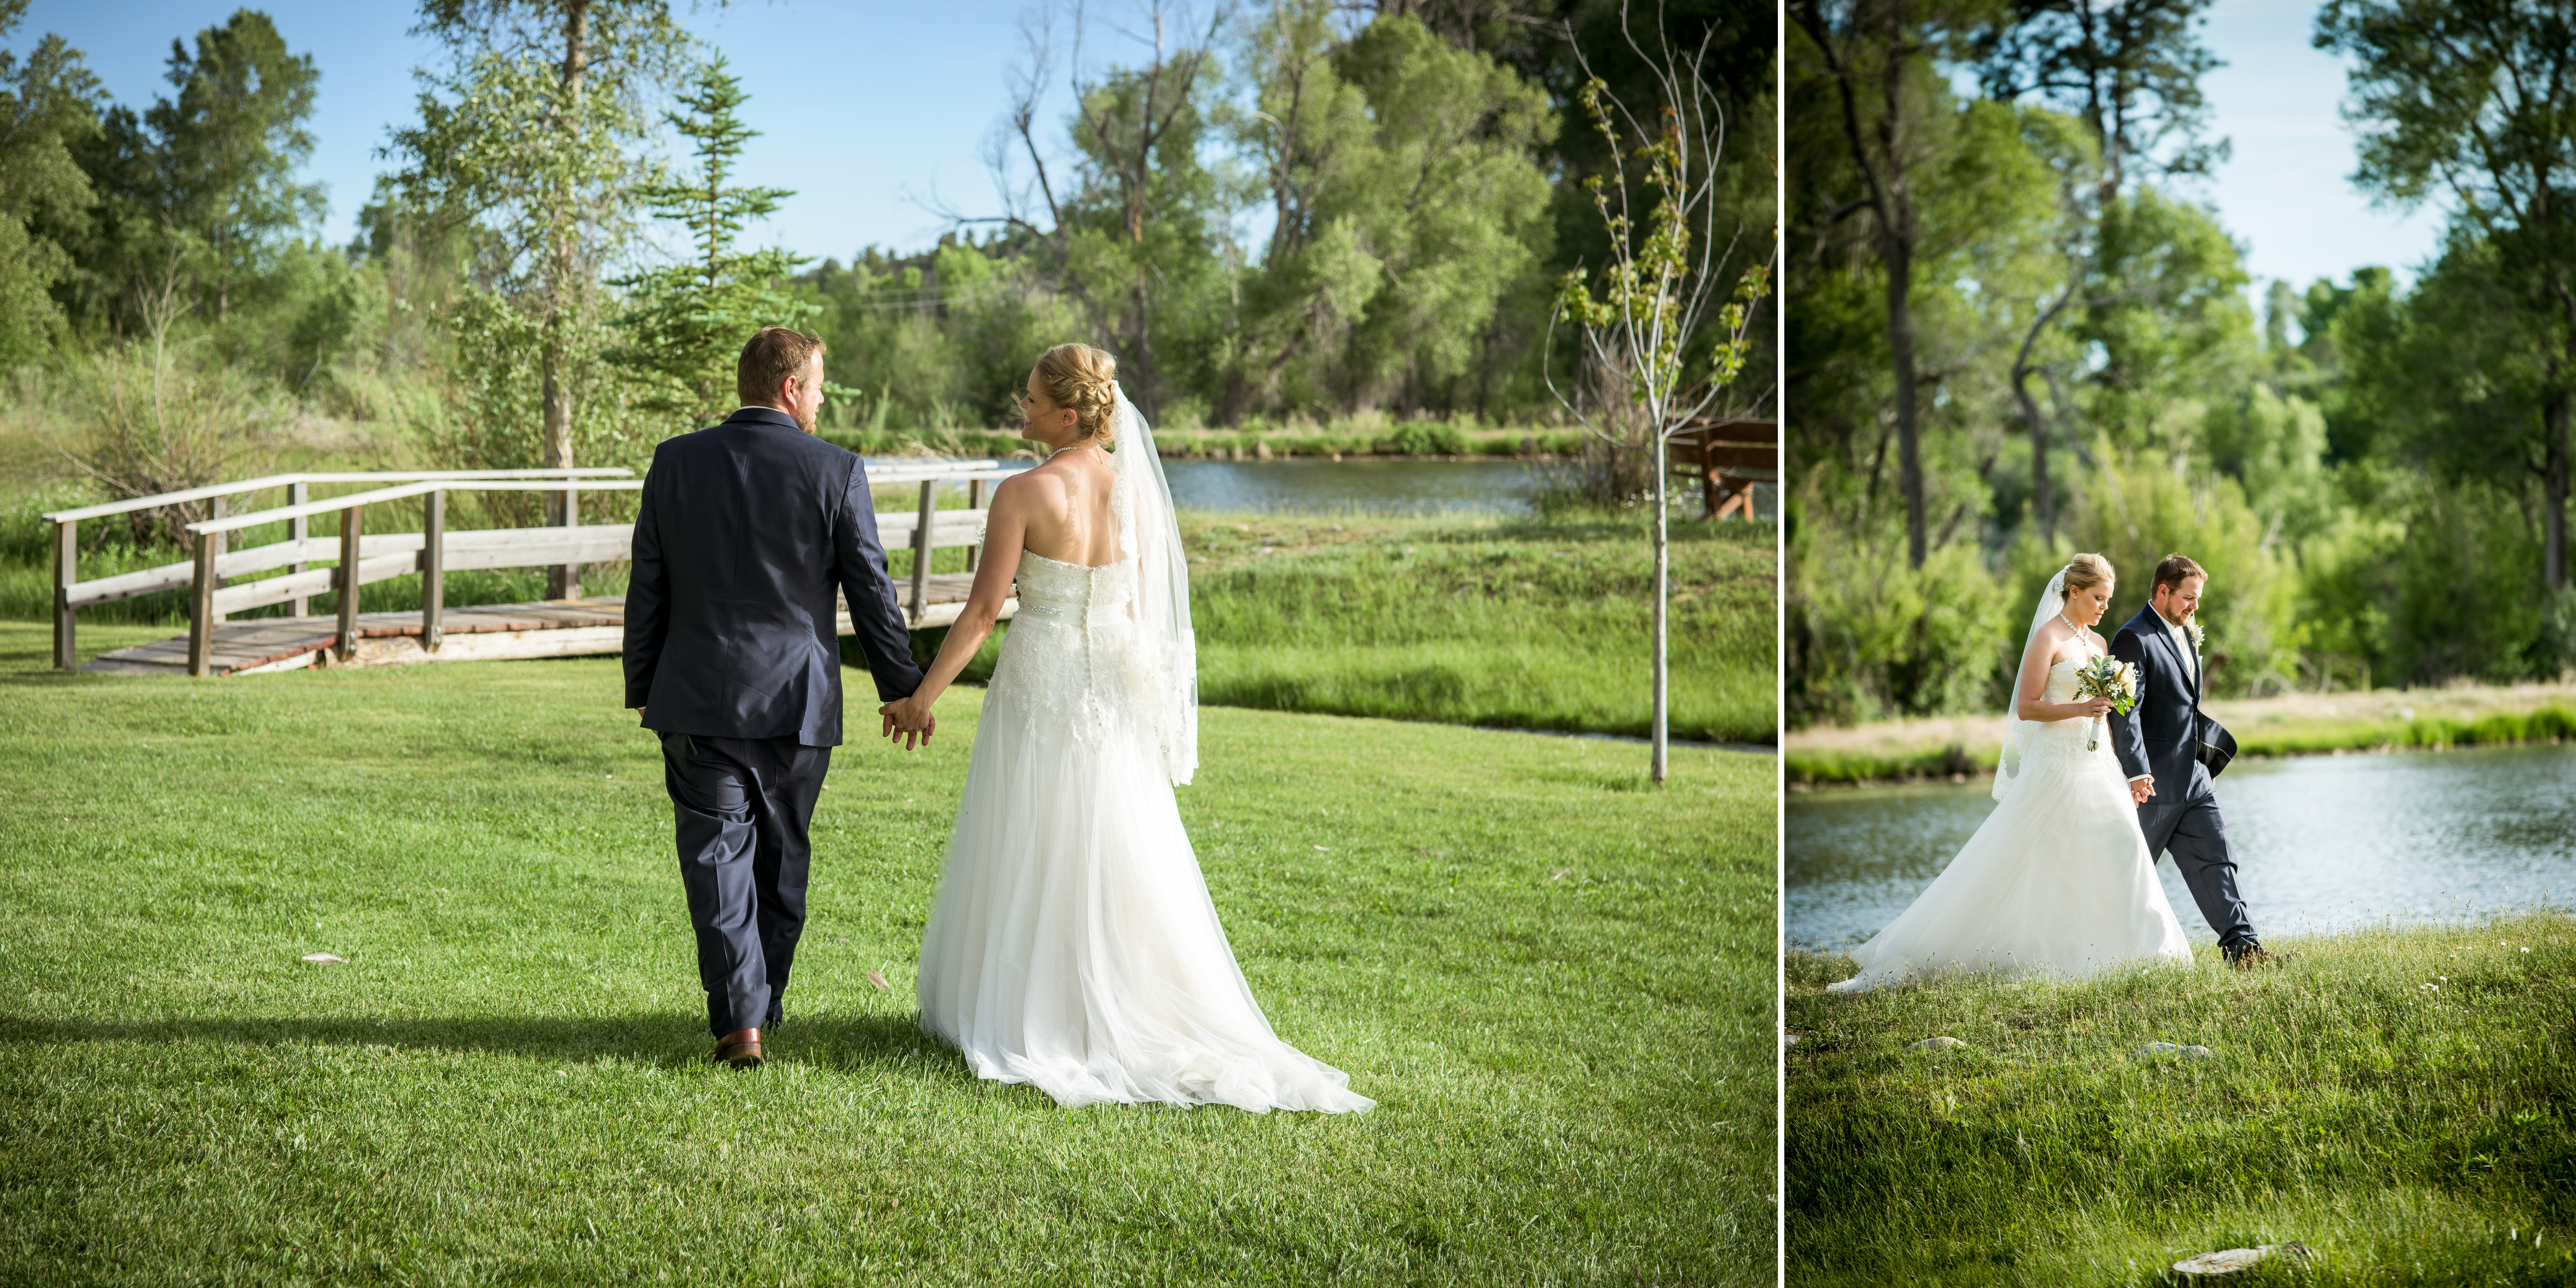 Weddings at LePlatts Pond